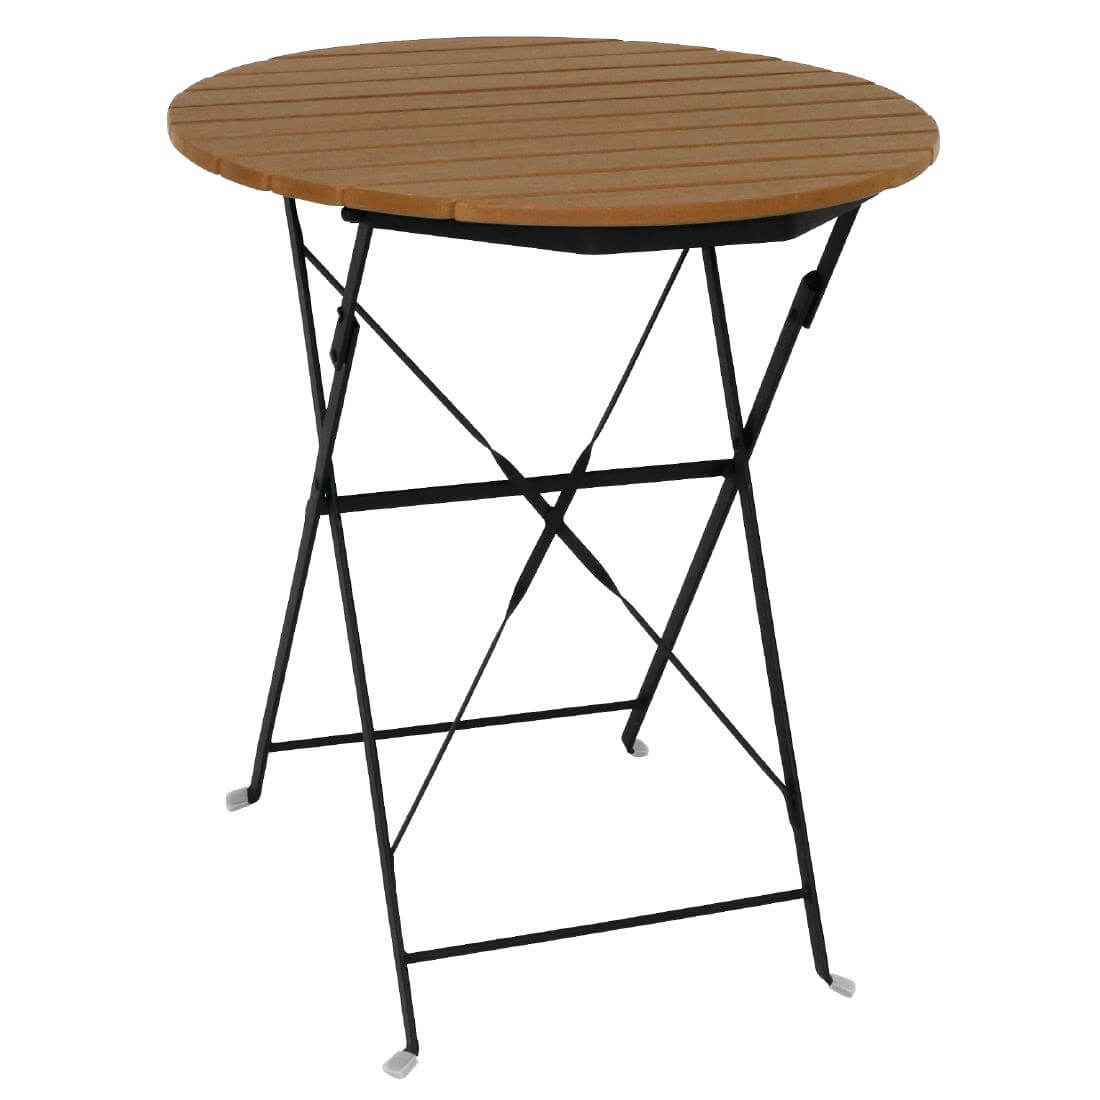 Faux Wood Folding Table - Round